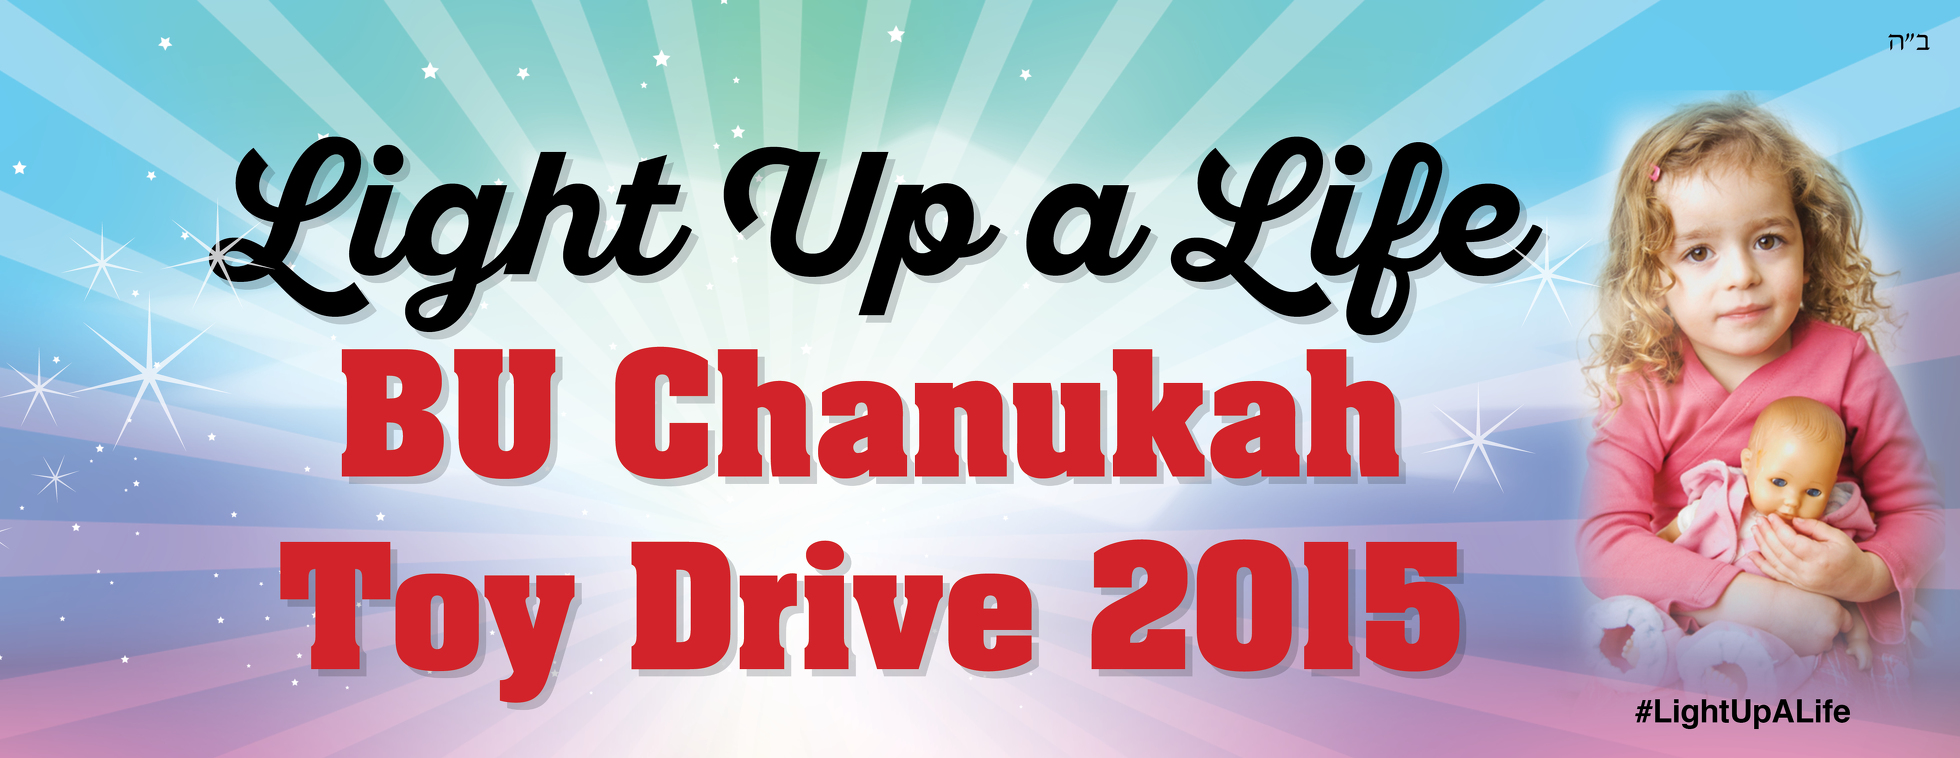 Light up a Life BU Chanukah Toy Drive 2015